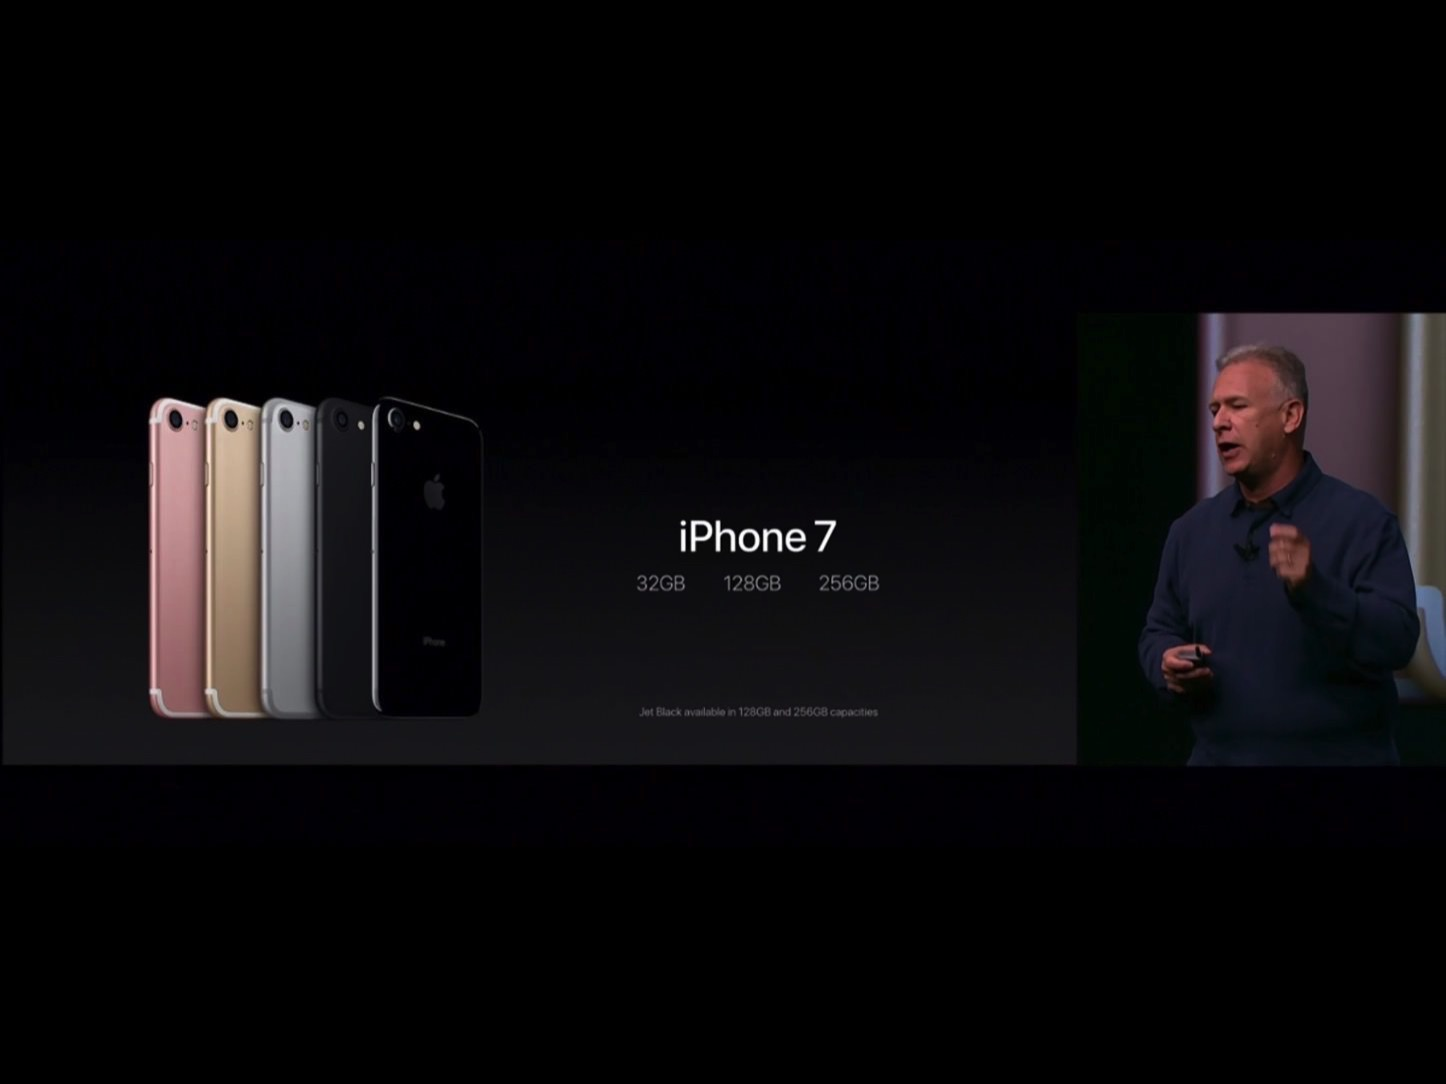 iPhone 7 iPhone 7 Plusの発表内容